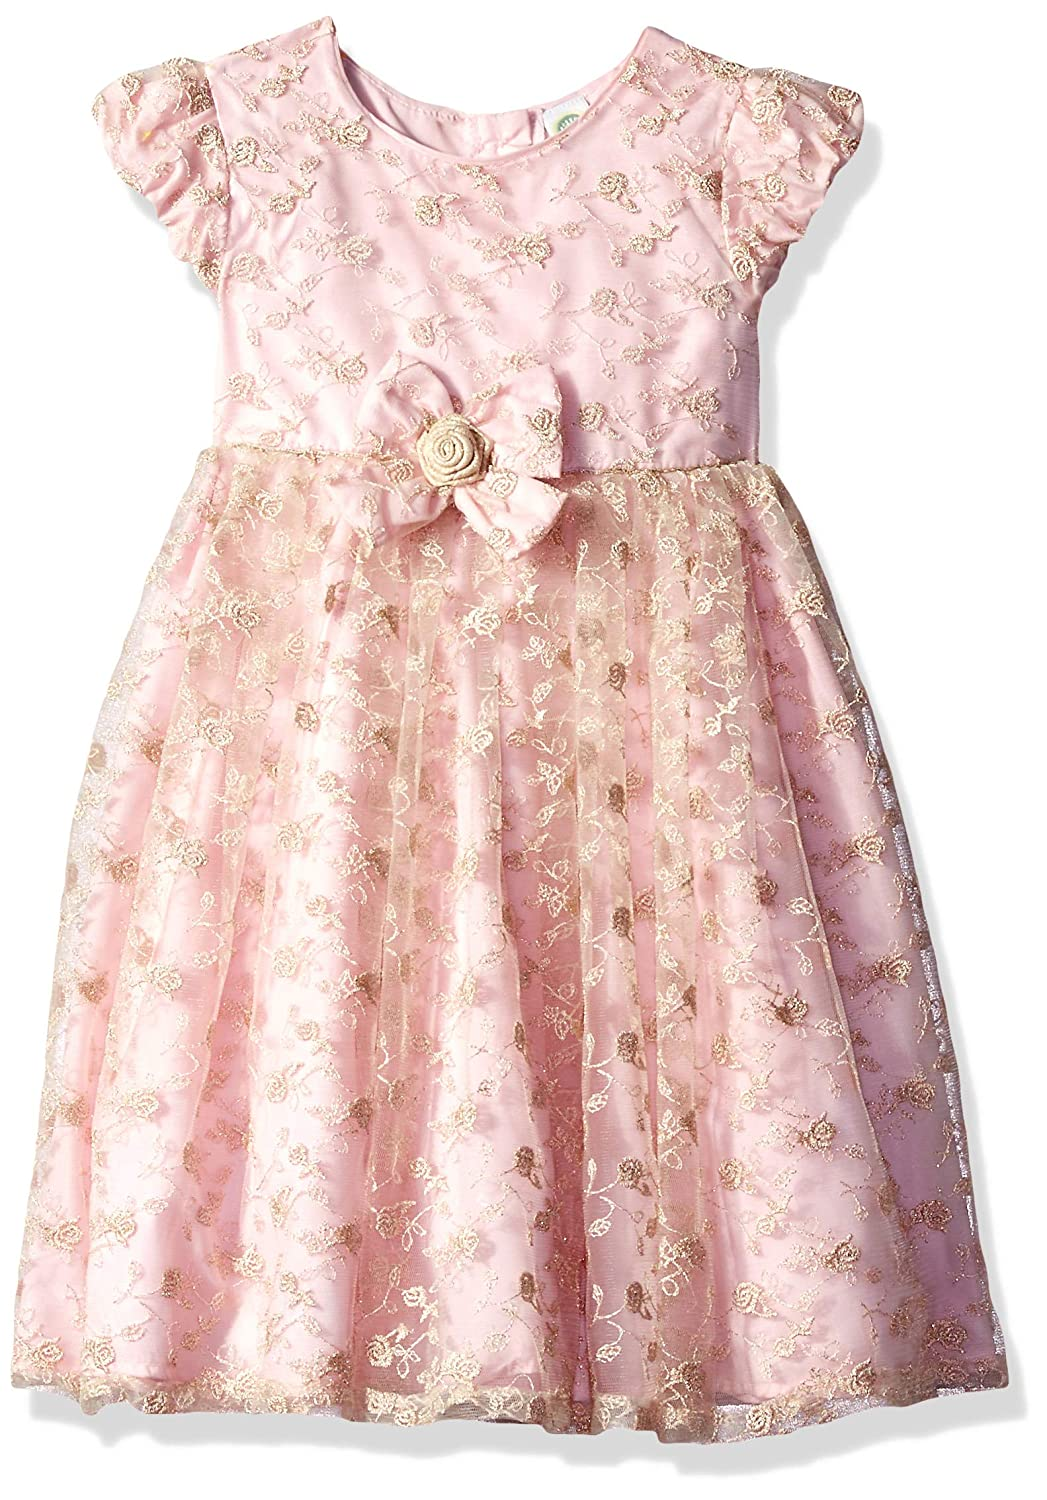 41e321240d Next Special Occasion Dresses Baby Girl